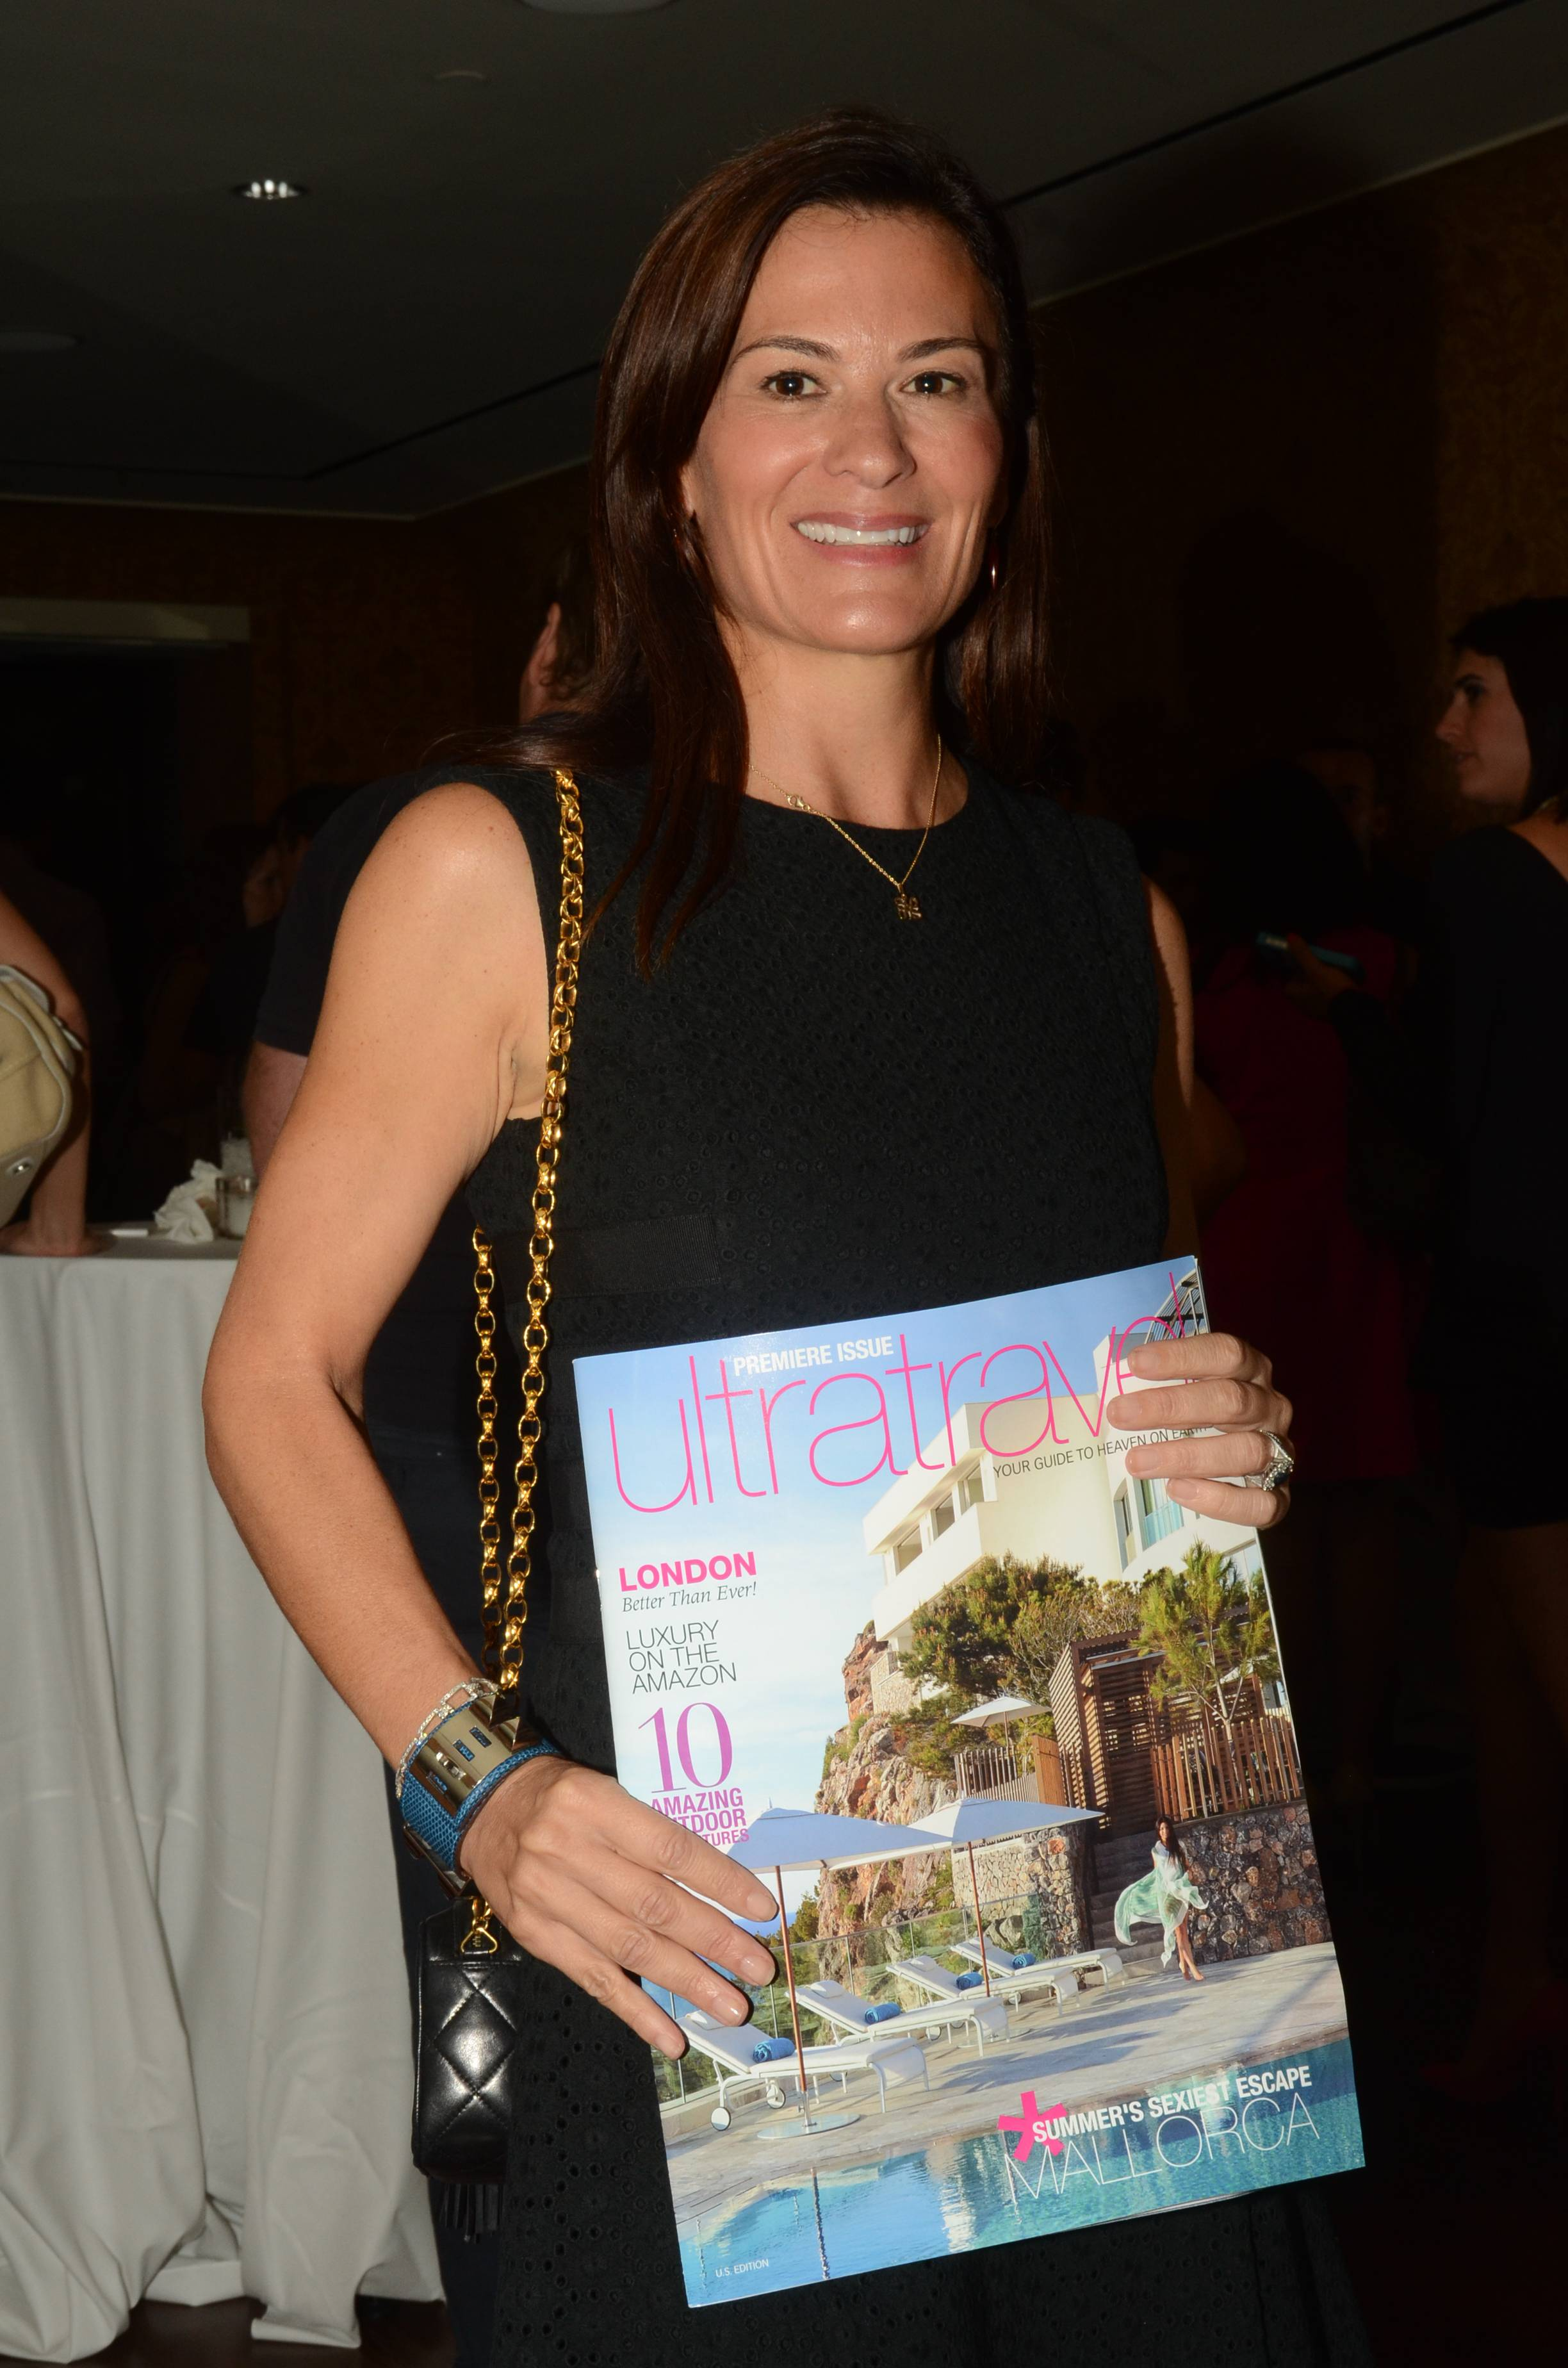 Sarah Harrelson Editor in Chief of Ultratravel U.S. Attends the U.S. Launch of Ultratravel at the NoMad Hotel